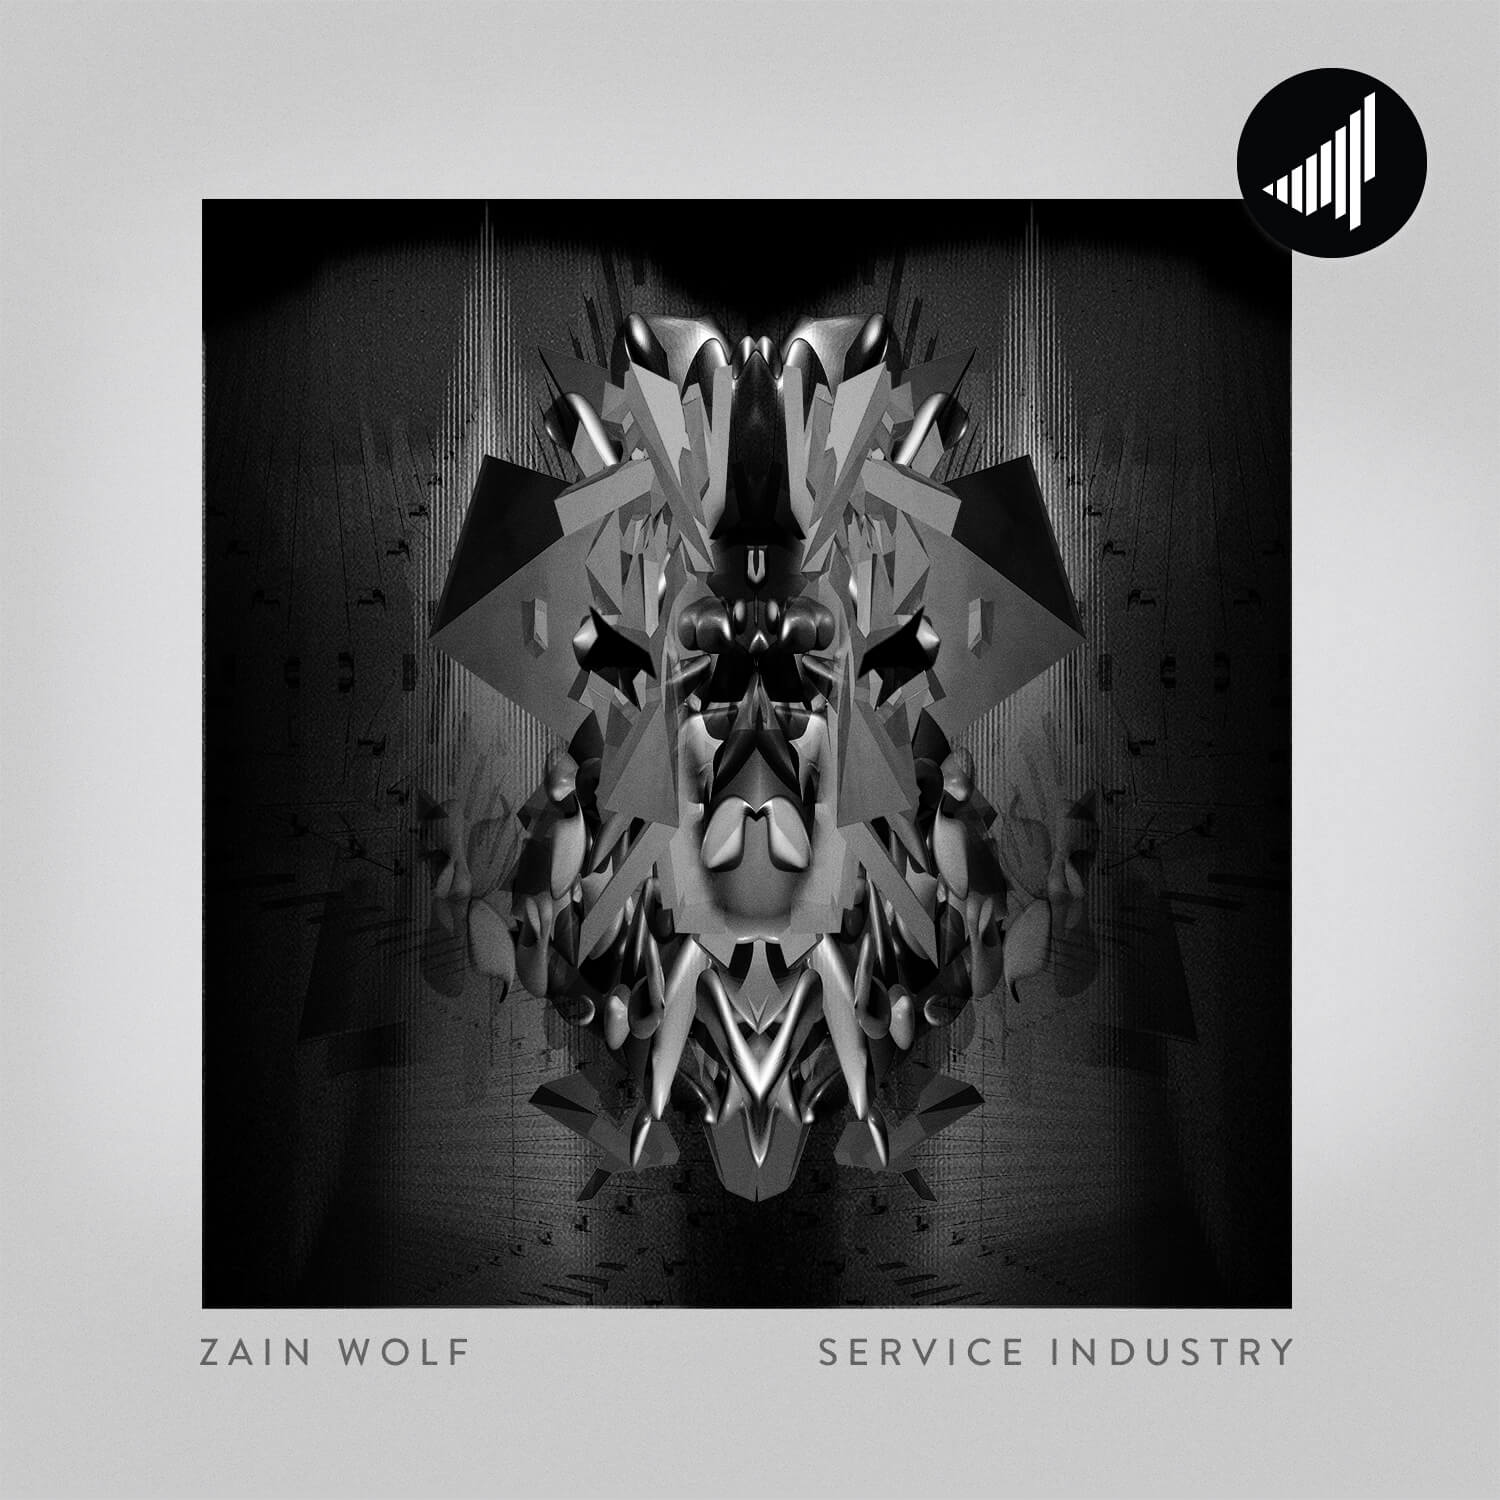 Zain Wolf brings us his SERVICE INDUSTRY EP